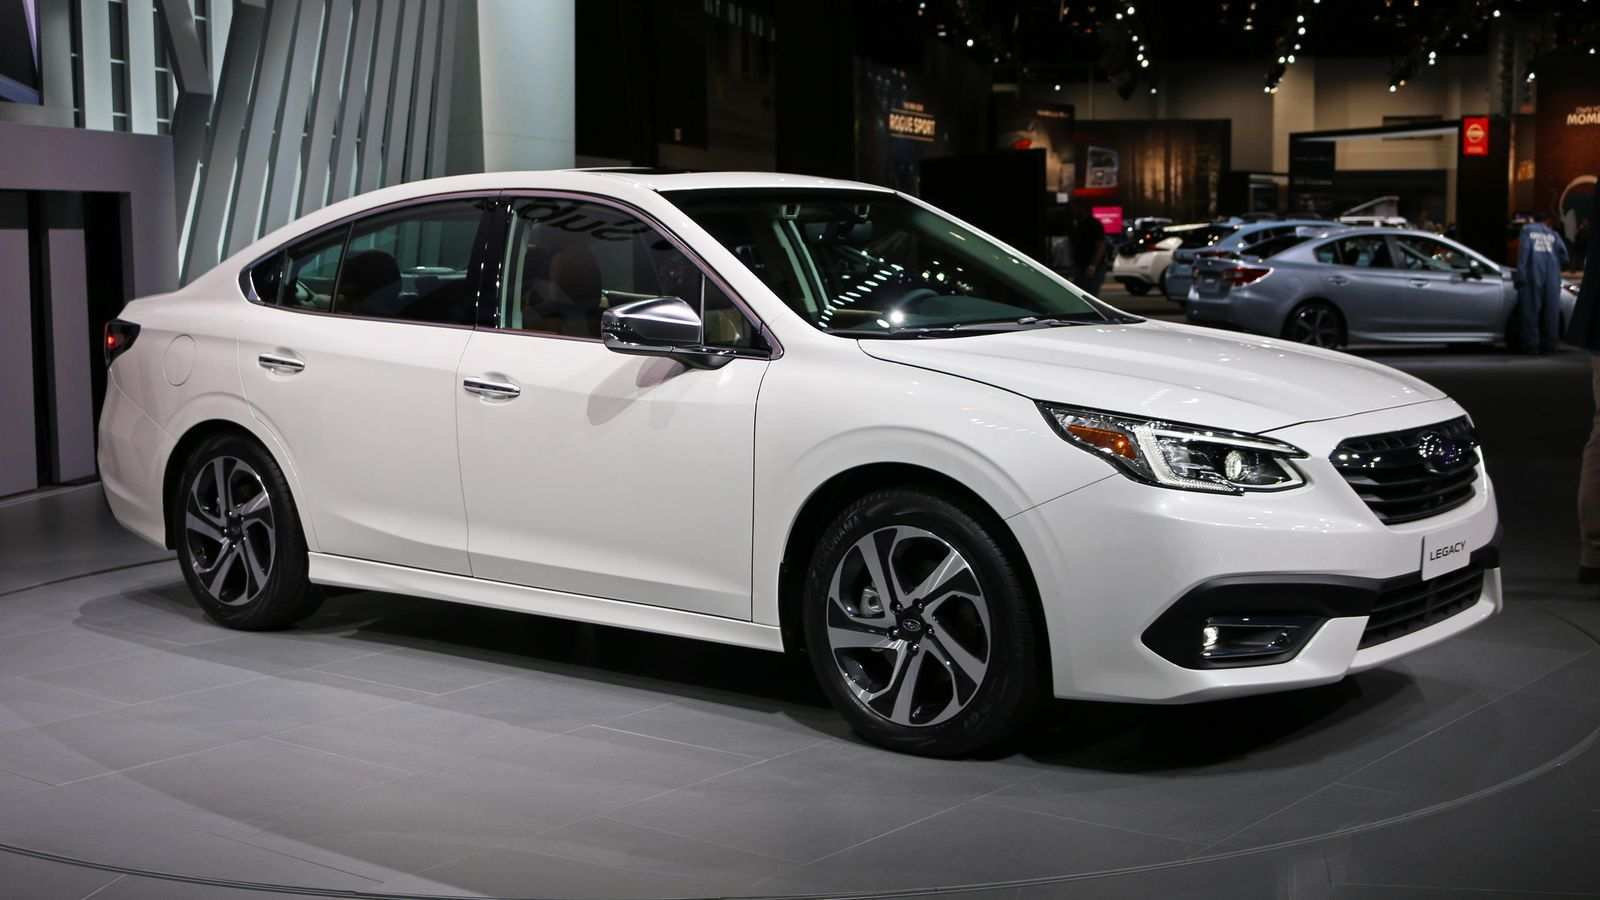 48 The Best 2020 Subaru Legacy Ground Clearance Specs